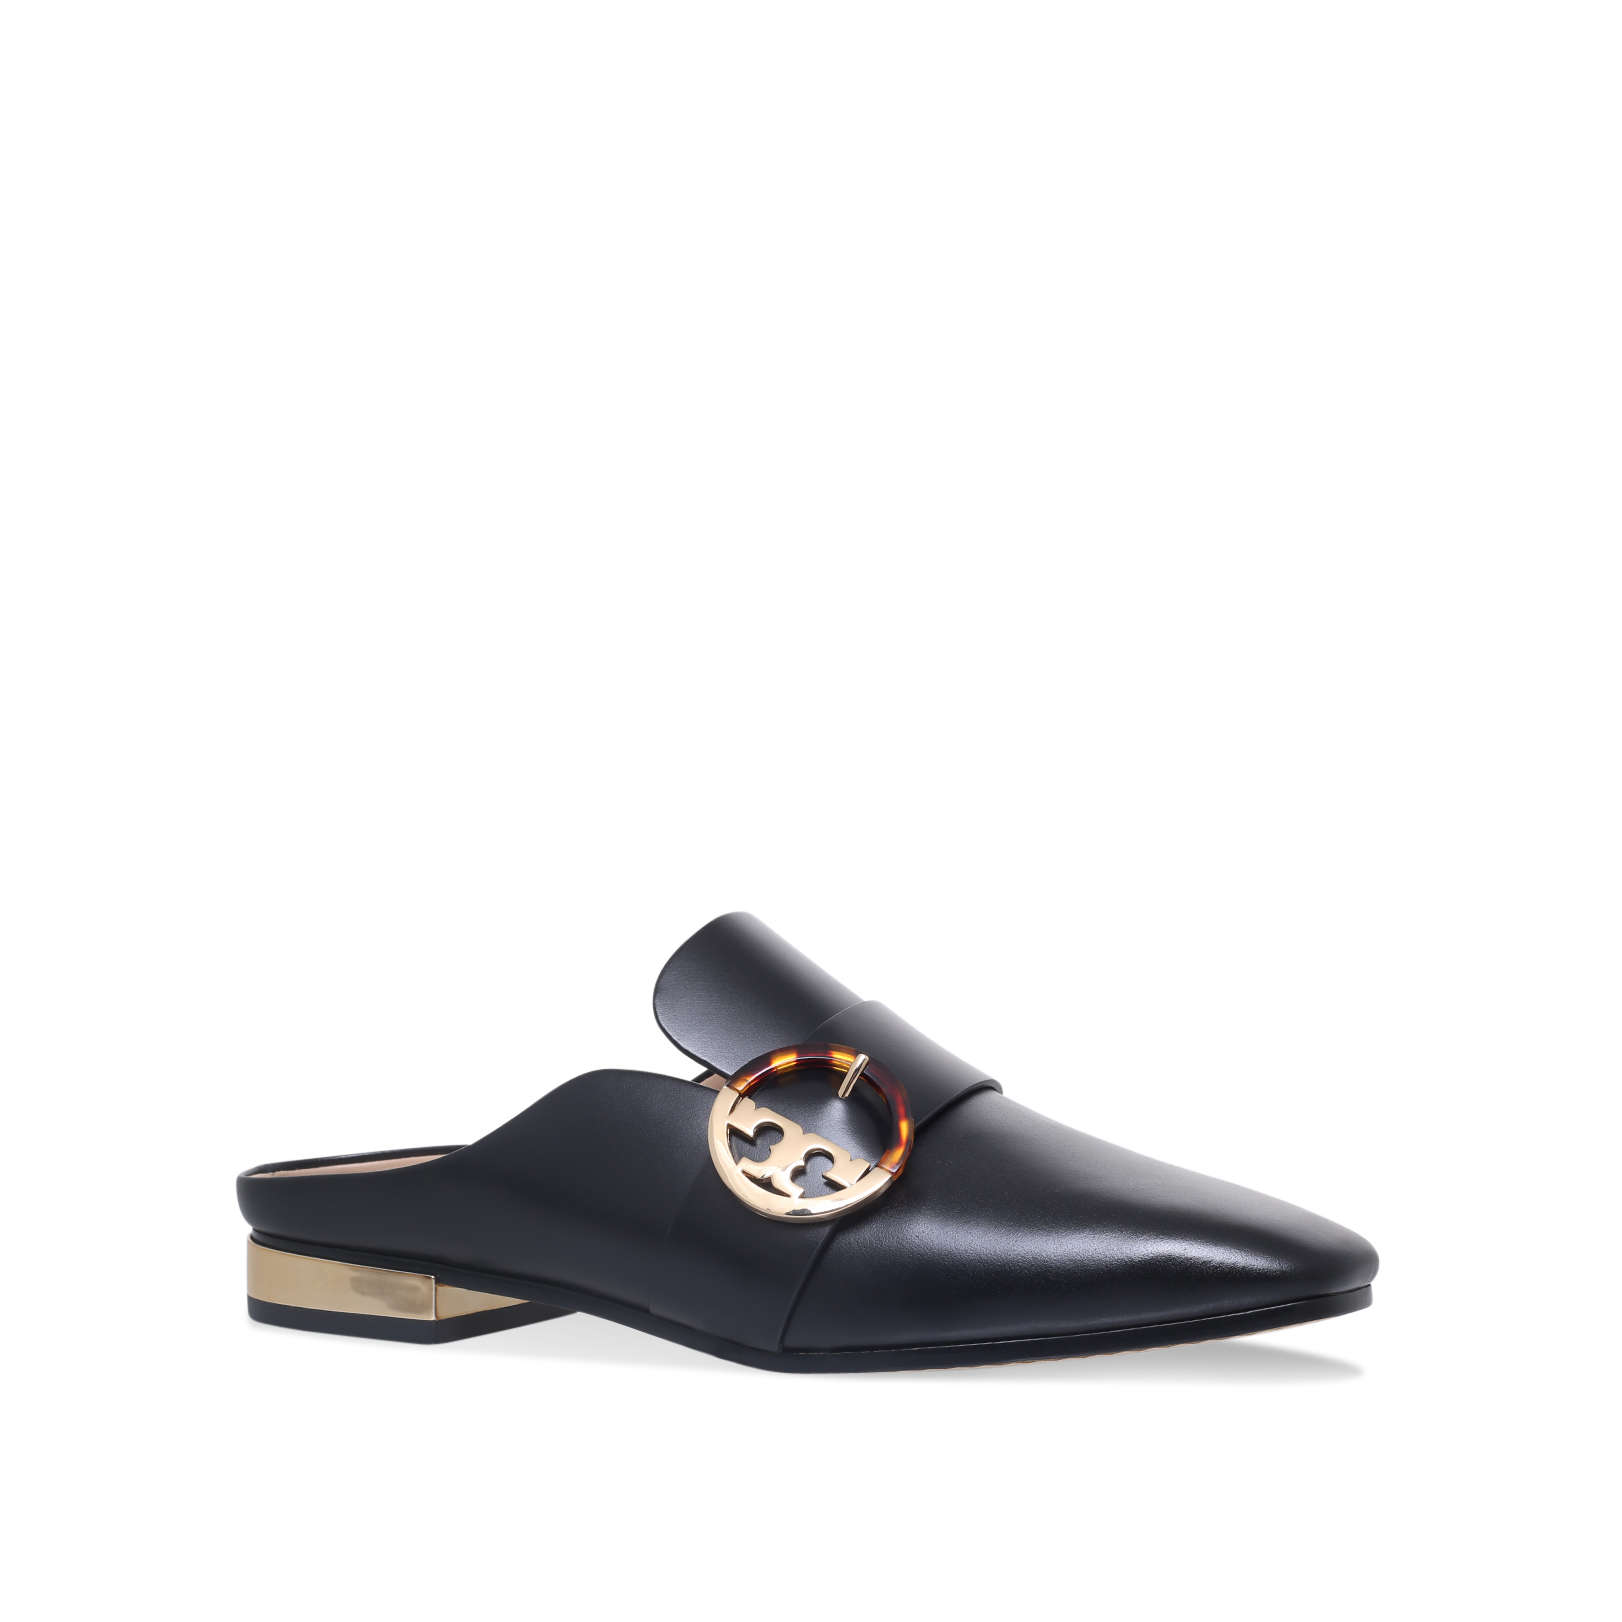 02a23acc6990 SIDNEY BACKLESS LOAFER Sidney Backless Loafer Flats Tory Burch Black by TORY  BURCH